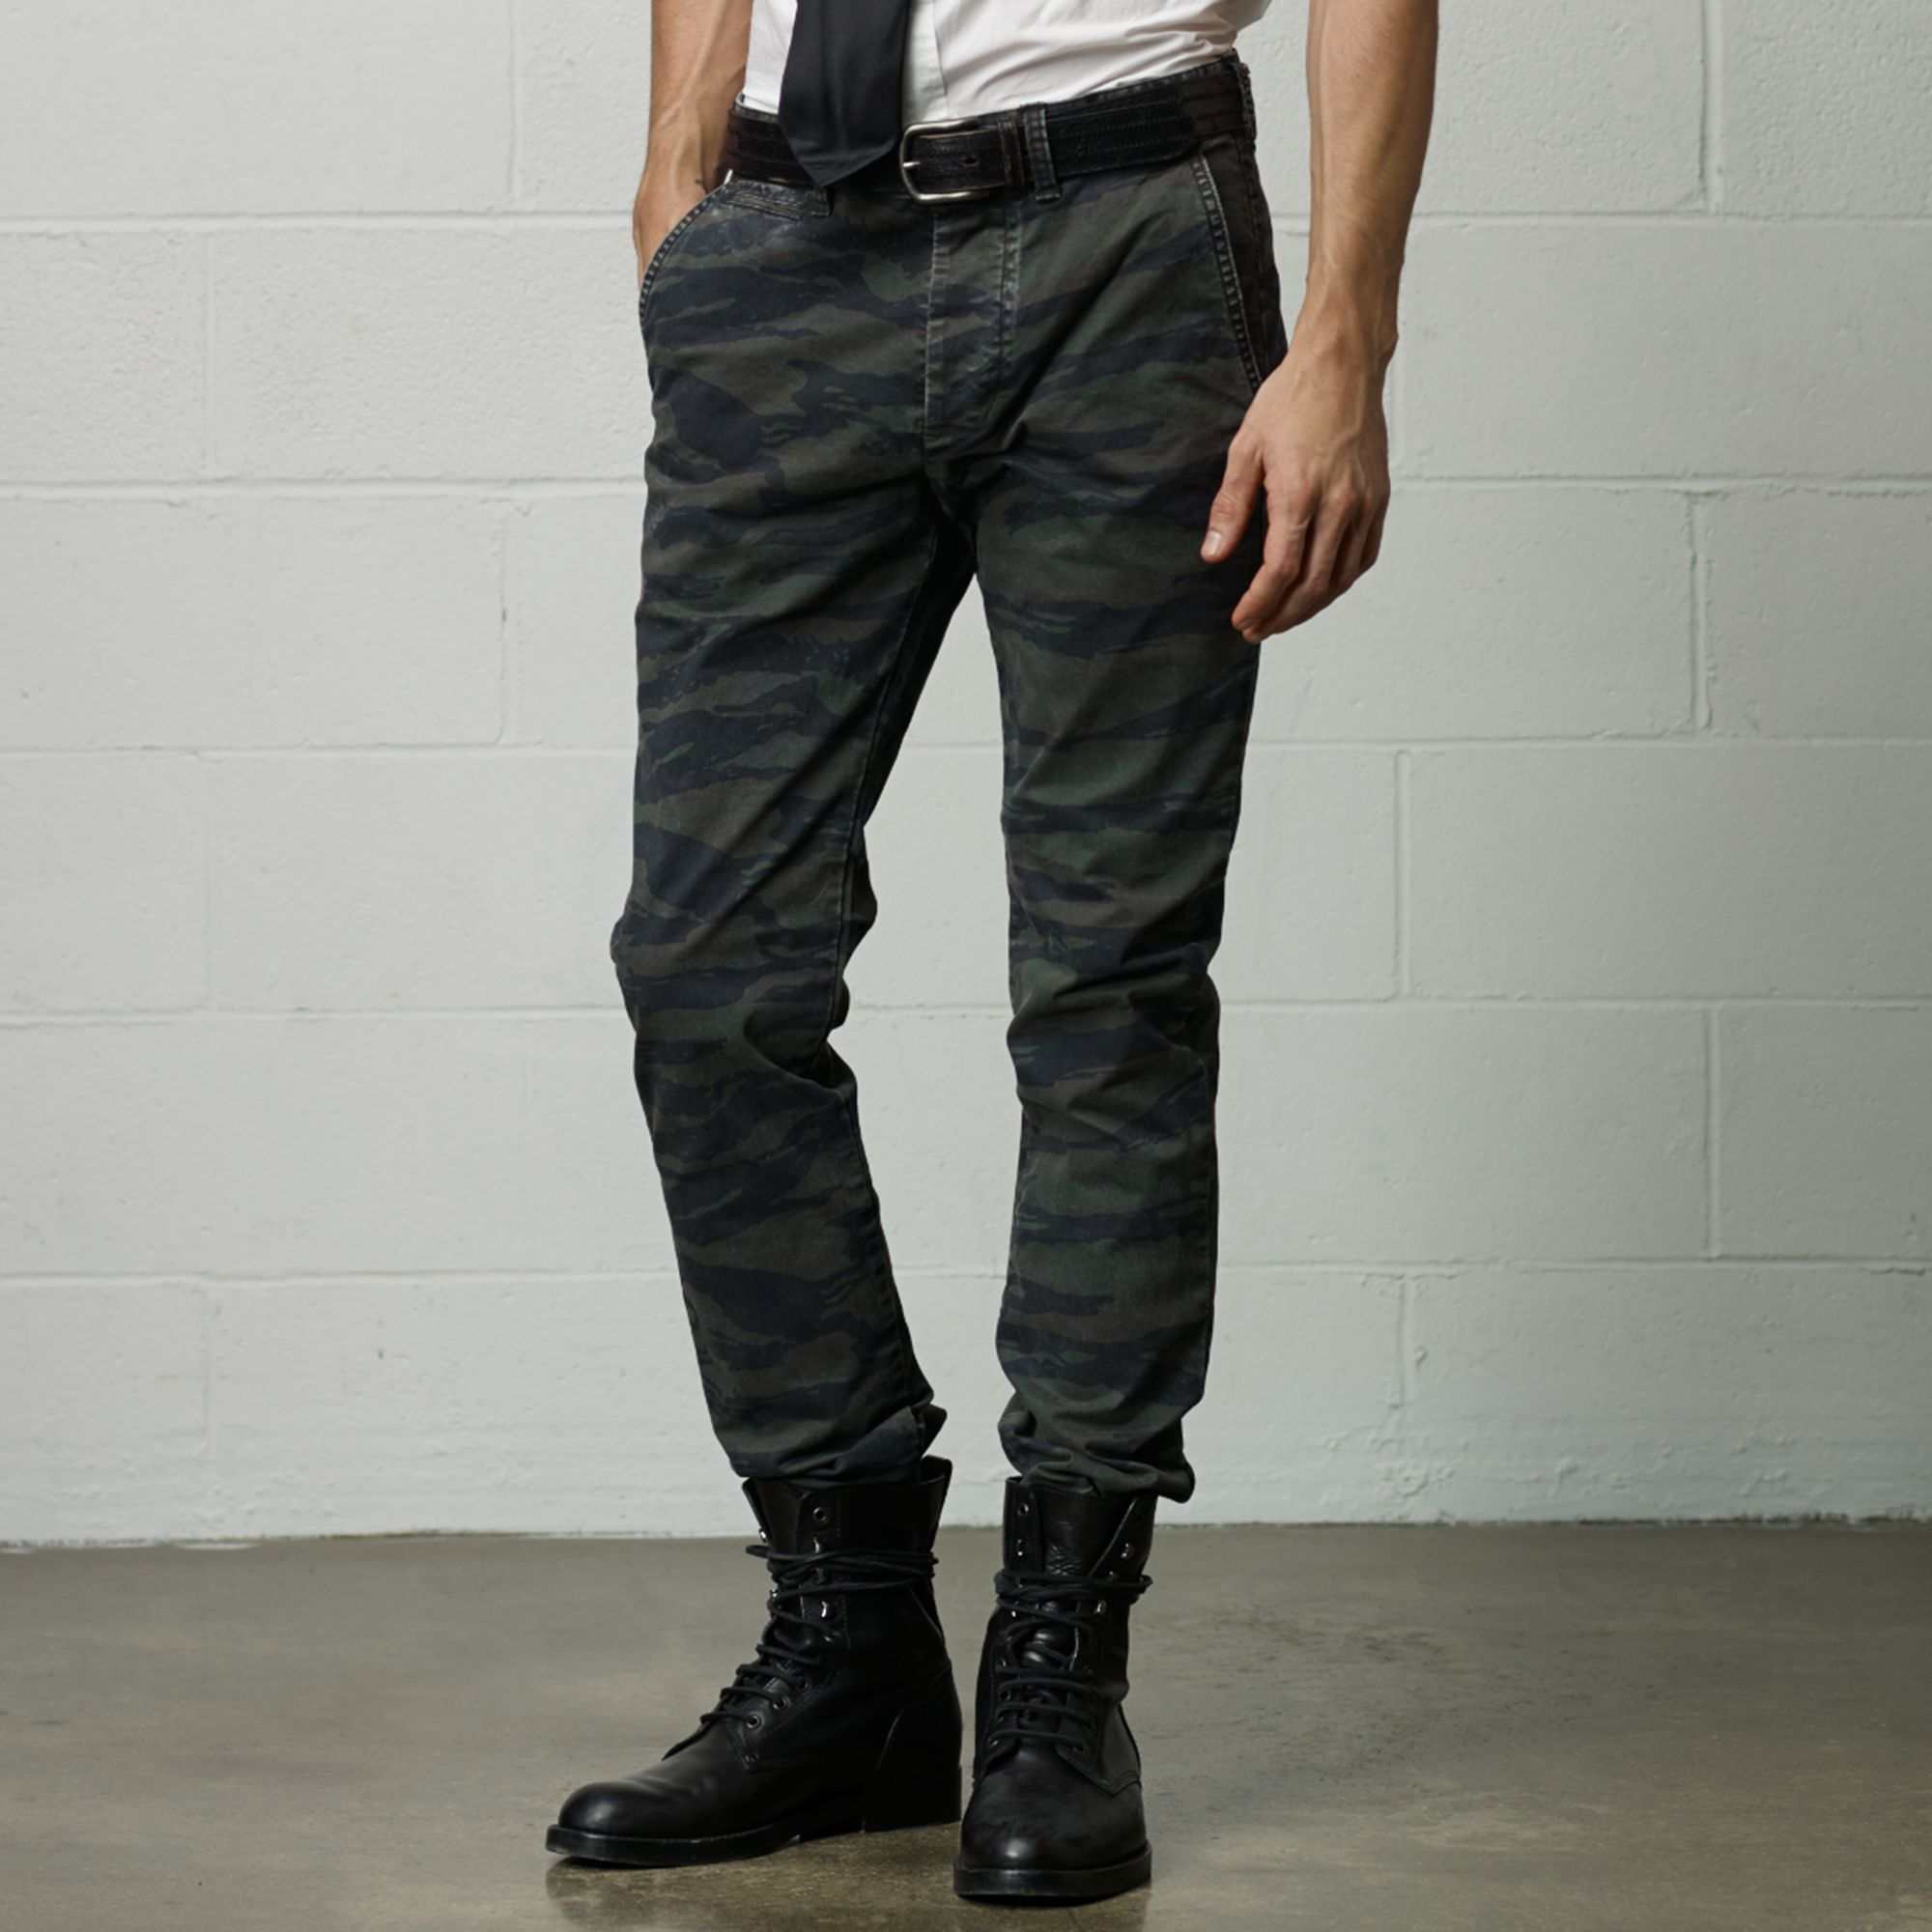 Ralph Lauren: Slim-fit Camouflage Chinos: £110.00. Source: Ralph Lauren